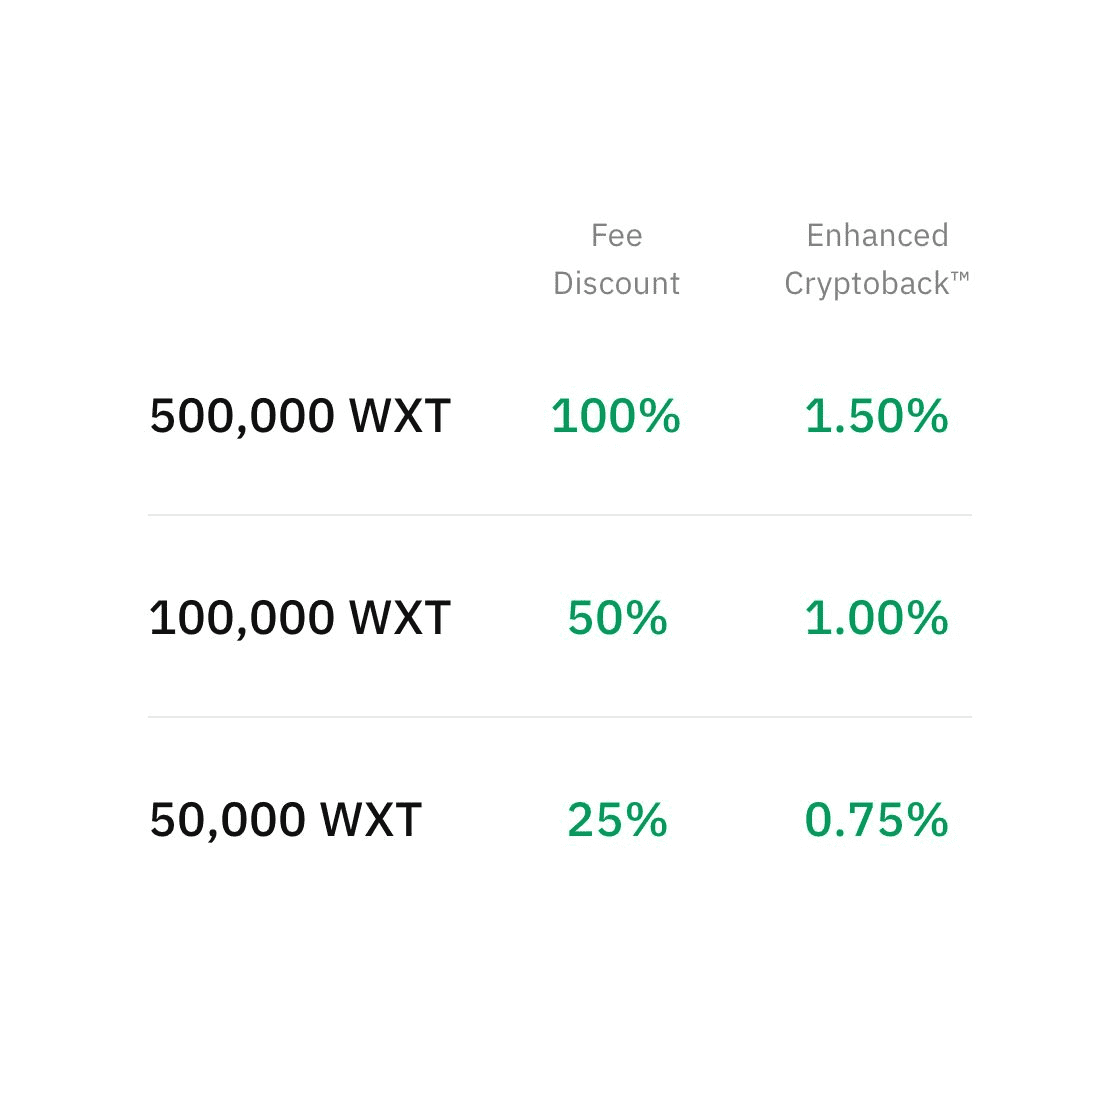 WXT crypto Fee discount & enhanced rewards - wirex